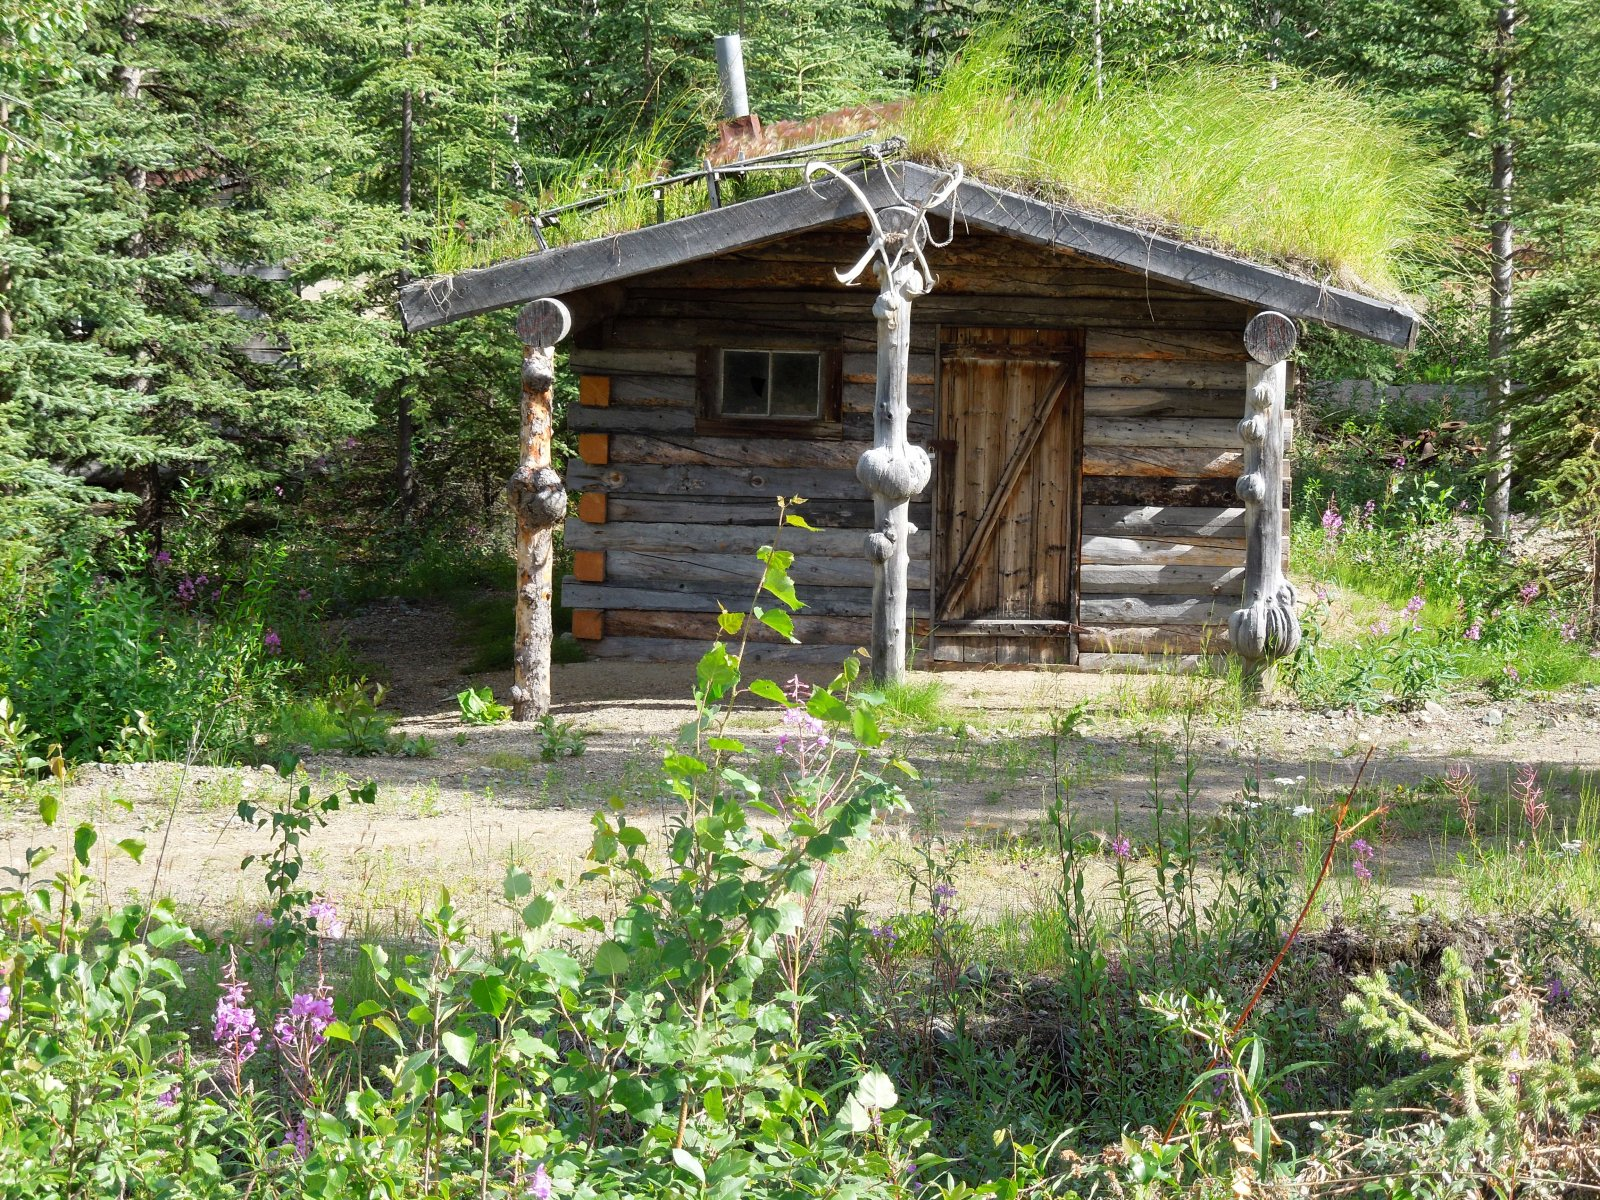 Click image for larger version  Name:Tok to Chicken to Dawson City 040.jpg Views:62 Size:815.2 KB ID:221591